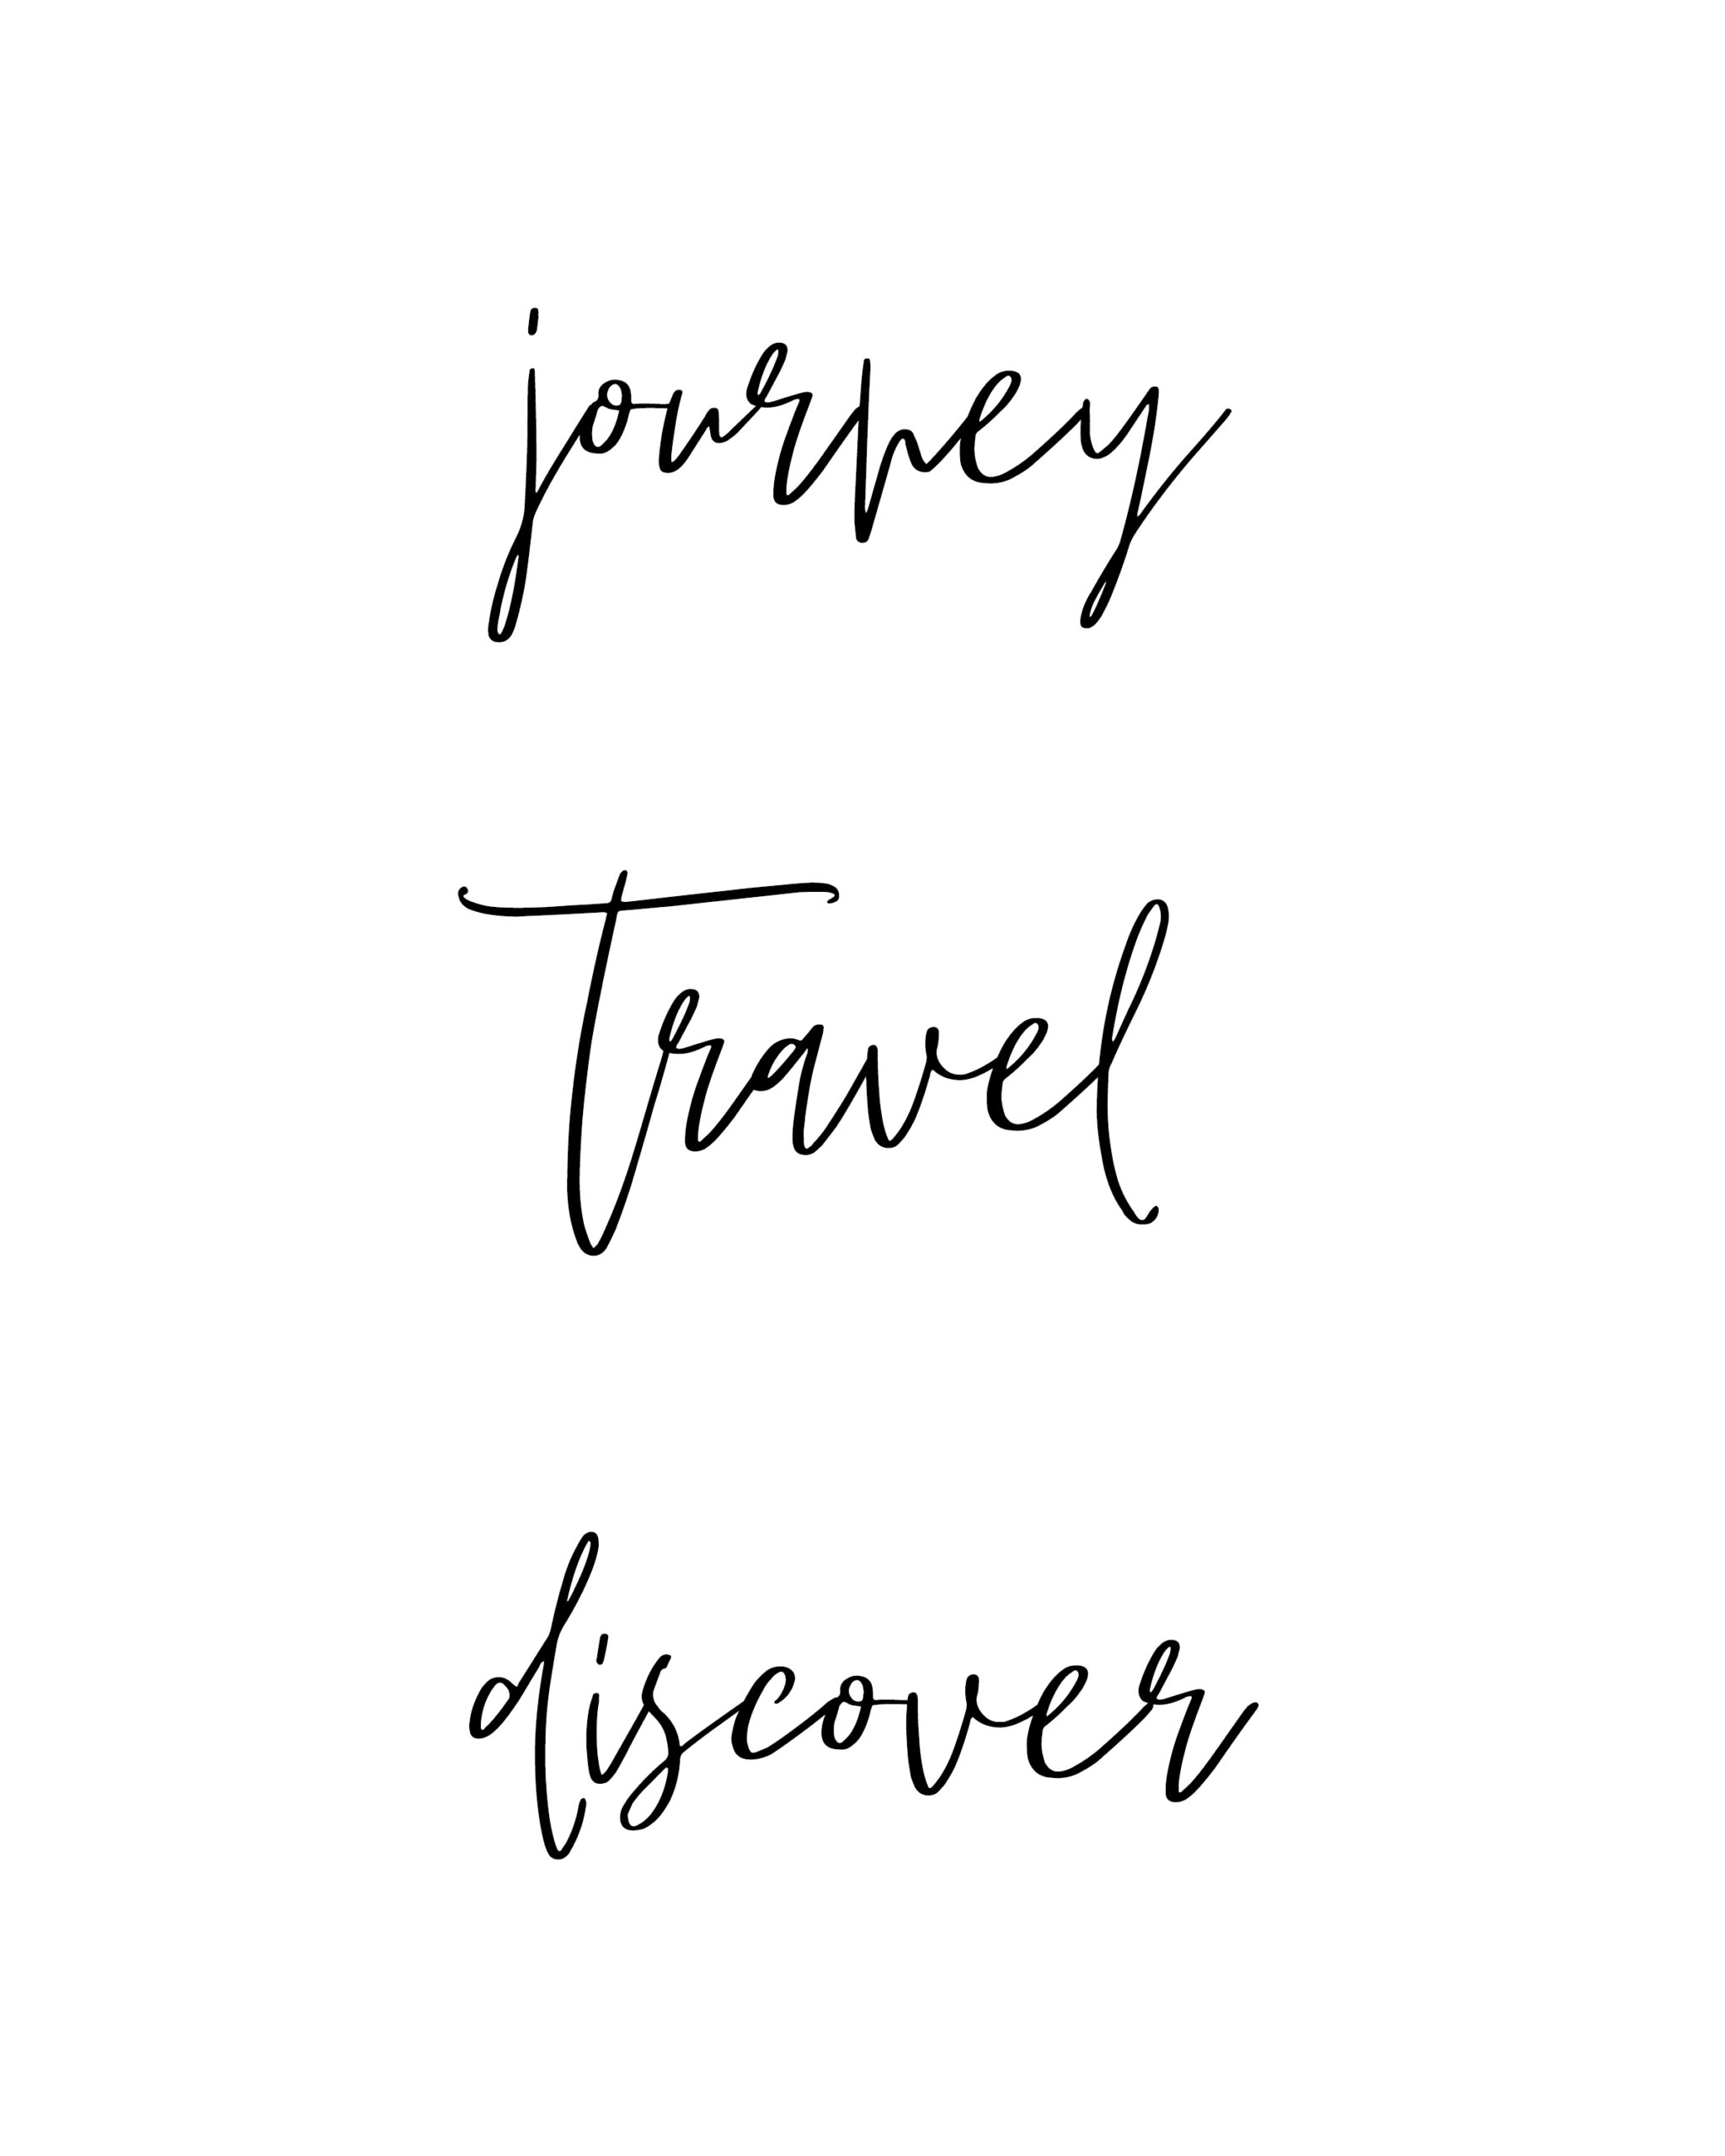 Journey travel discover